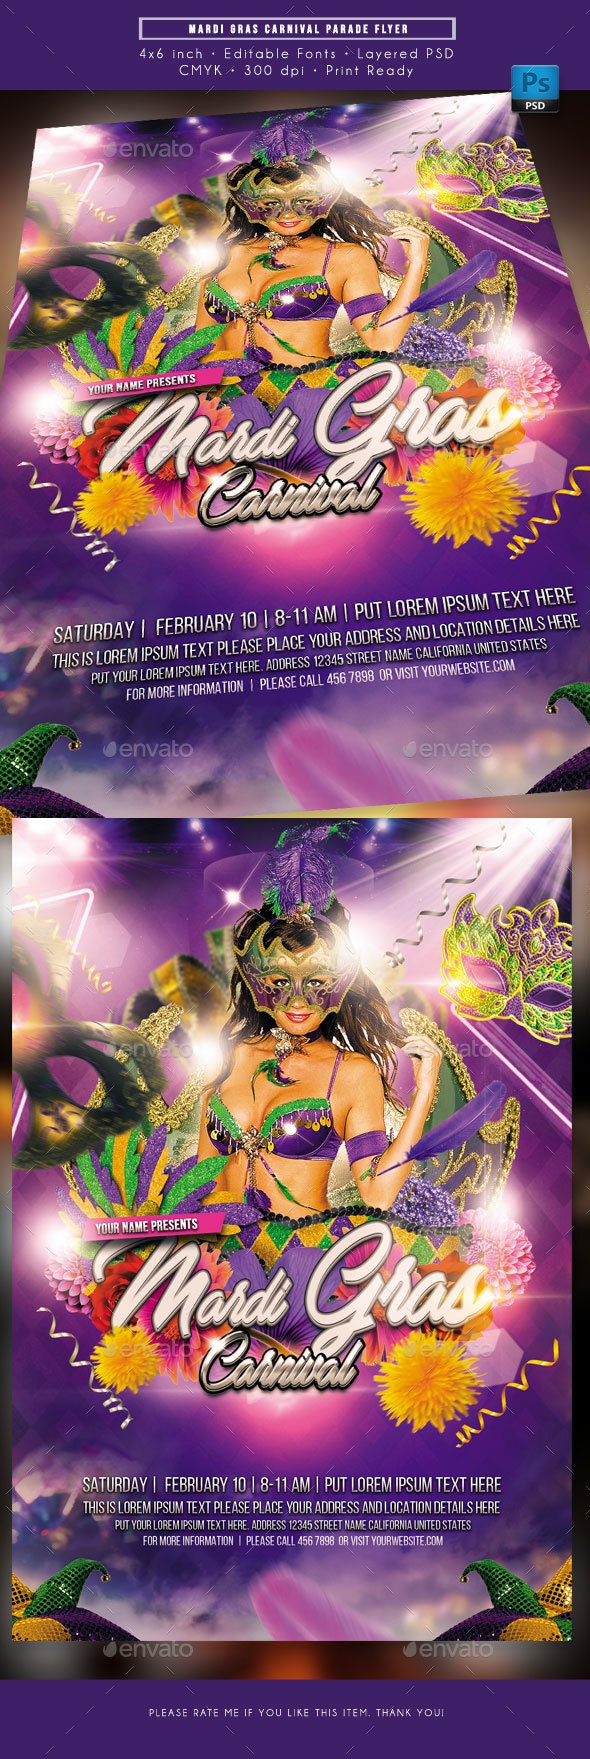 Mardi Gras Carnival Parade Flyer - Holidays Events